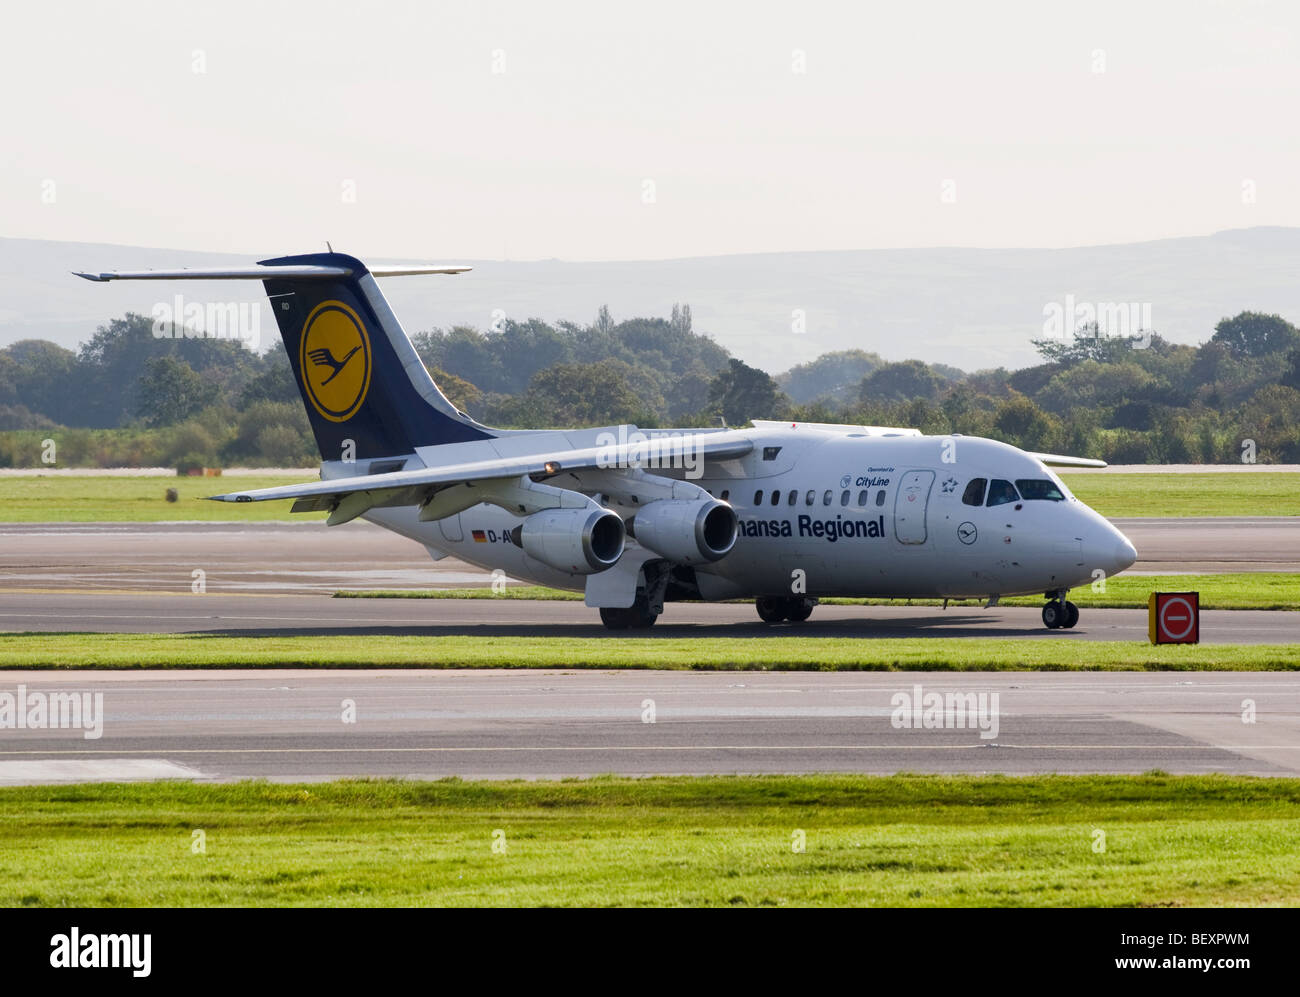 Lufthansa CityLine Avro RJ85 Cityliner Airliner D-AVRD Taxiing at Manchester International Airport England United - Stock Image